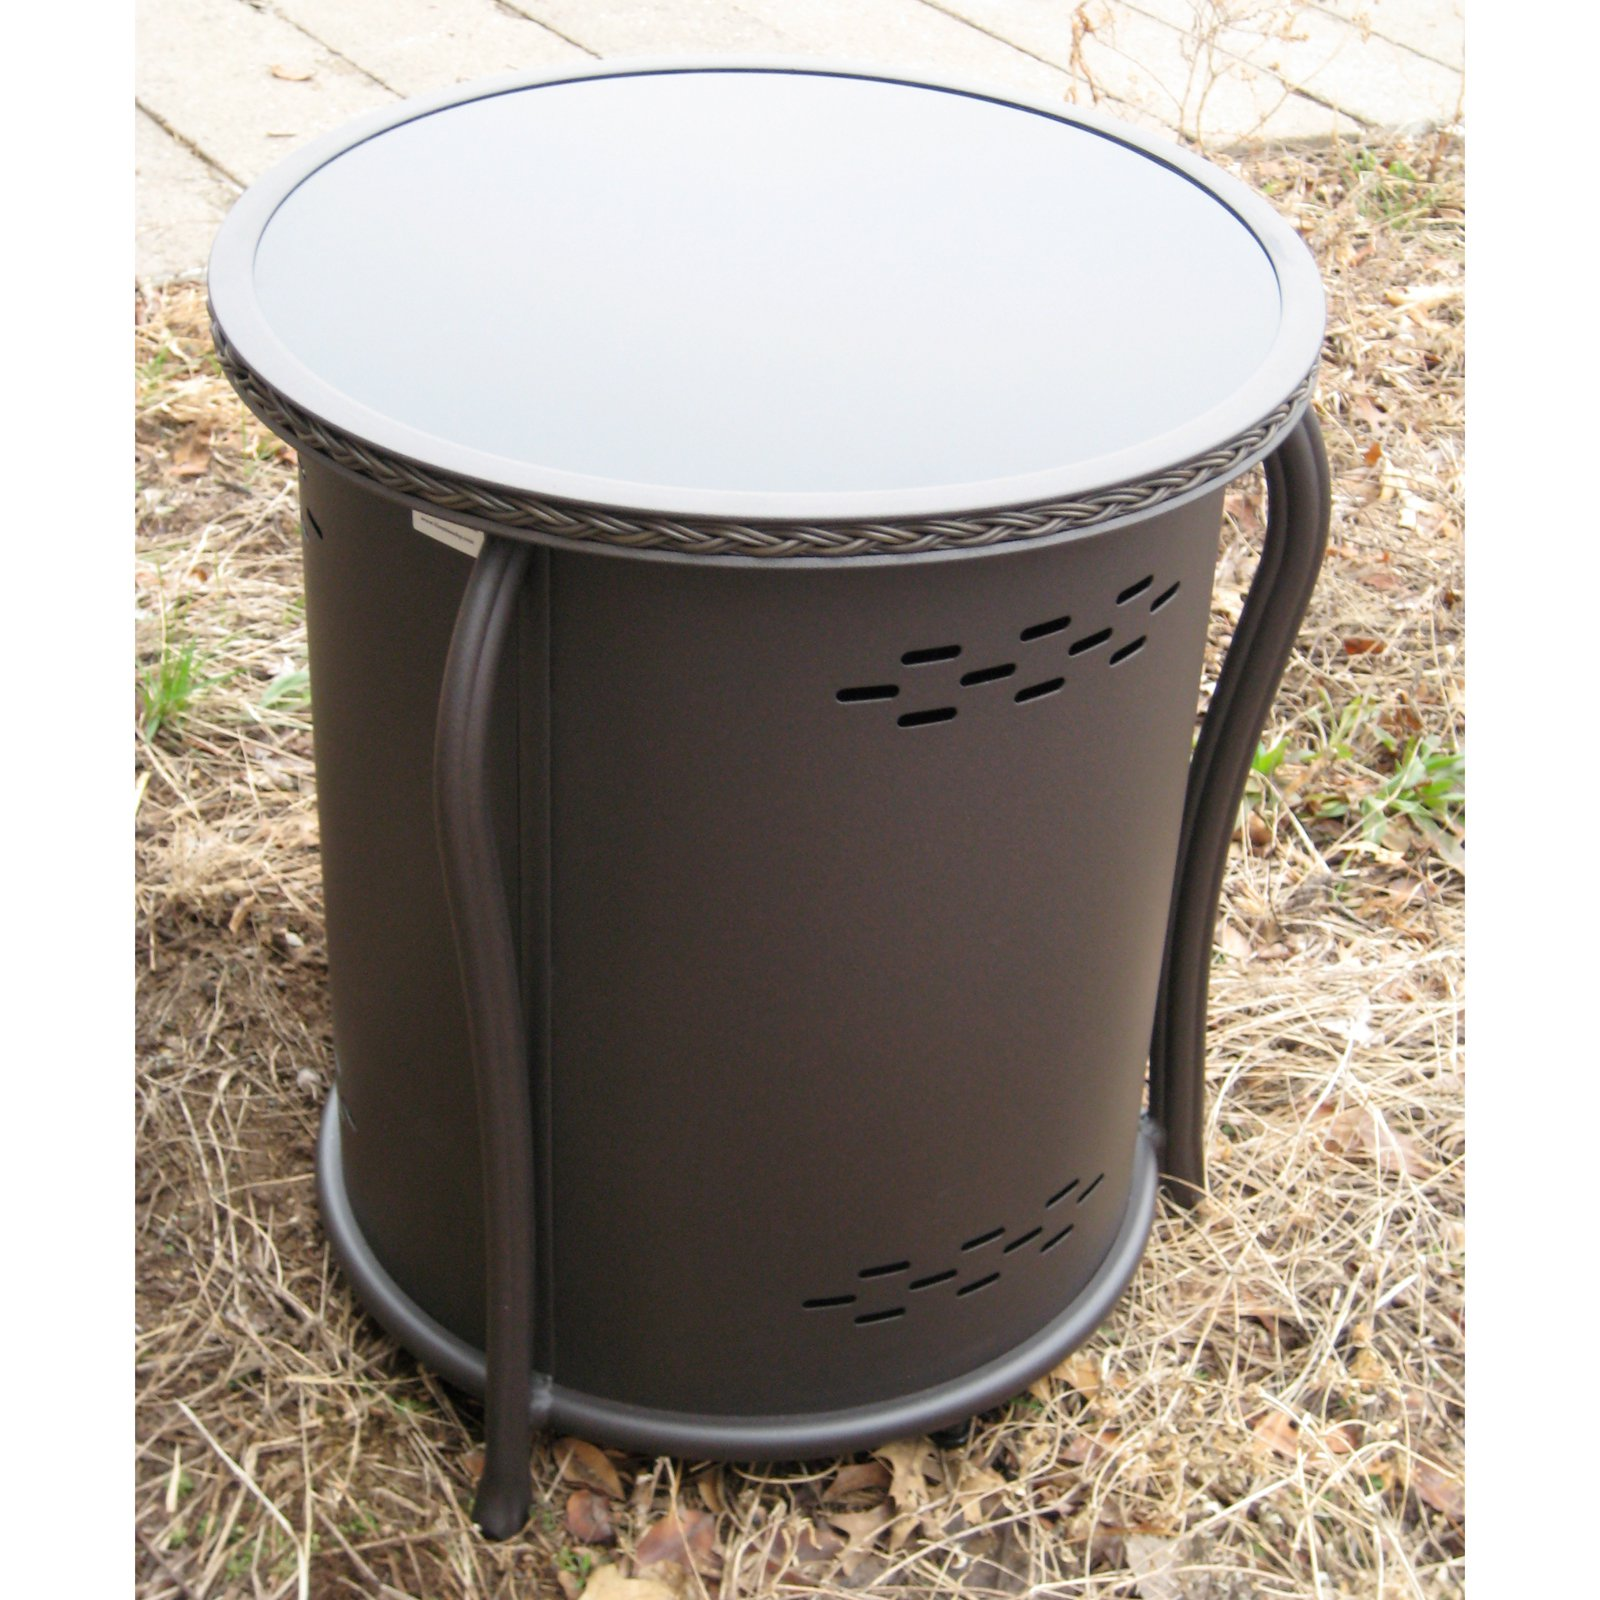 Outdoor GreatRoom Propane Tank Cover and Side Table with Glass Top